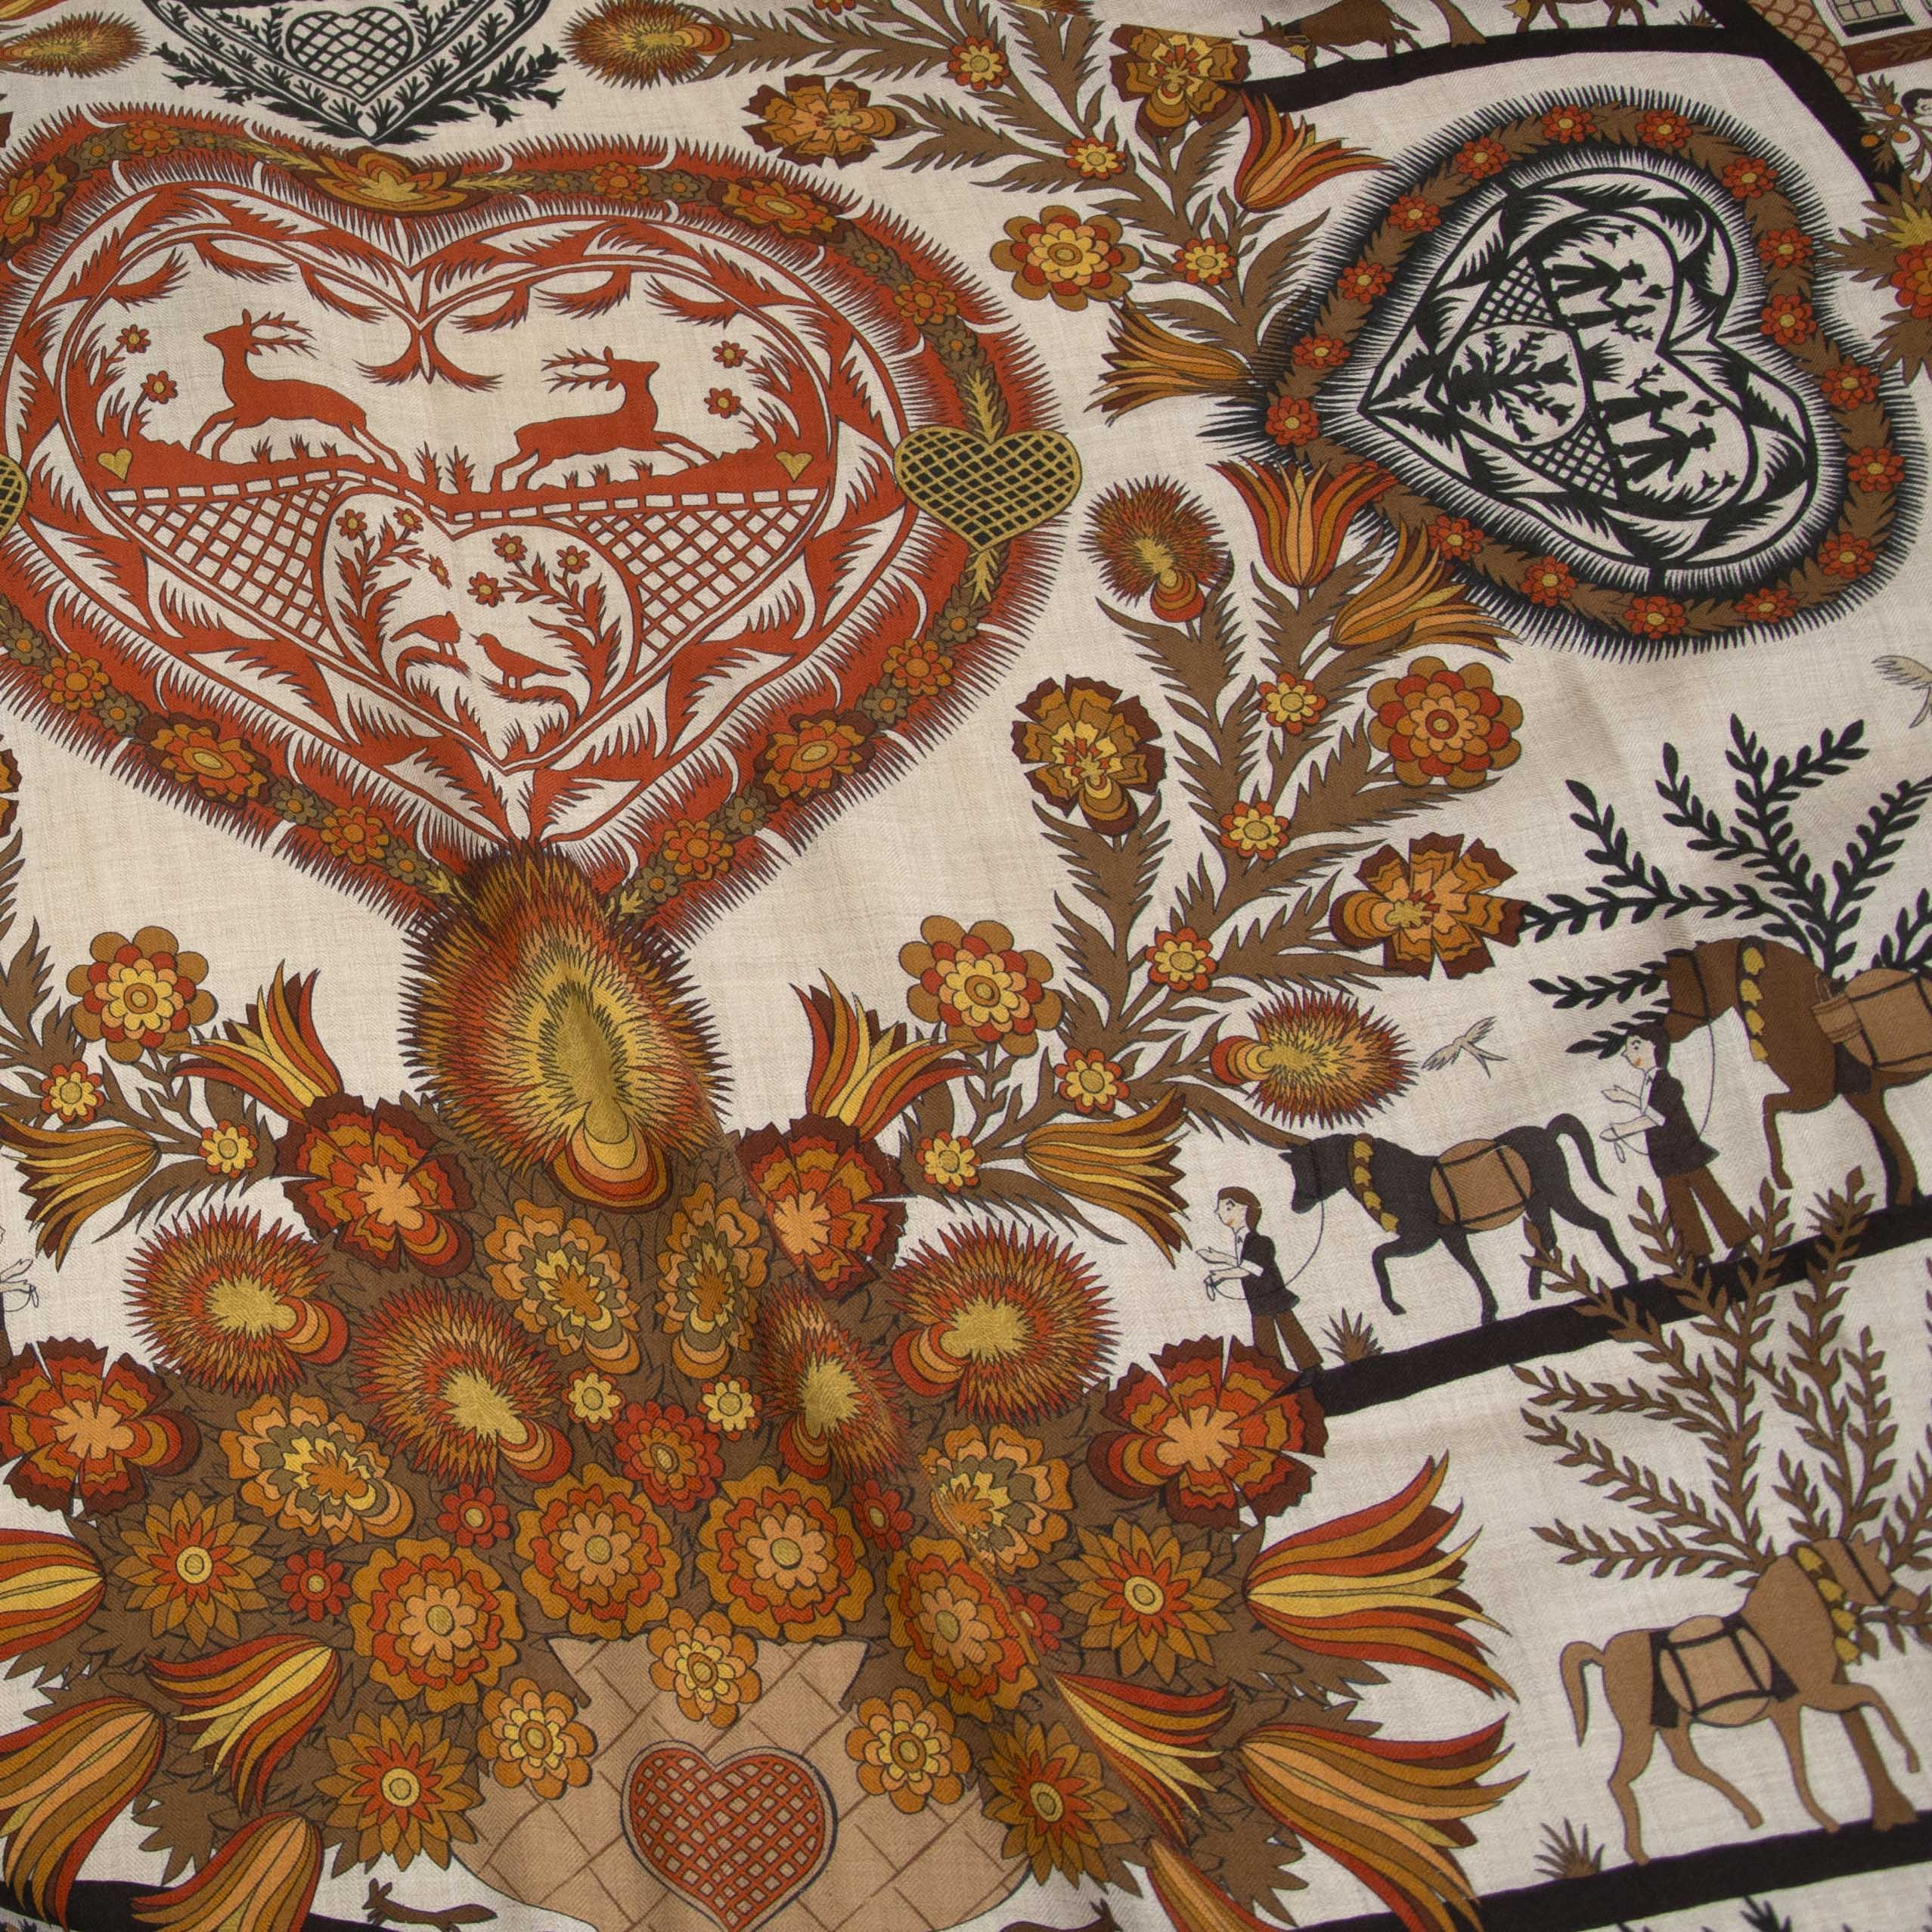 Looking for a Hermes Brown Large Carré Scarf ? now online at labellov.com for the best price